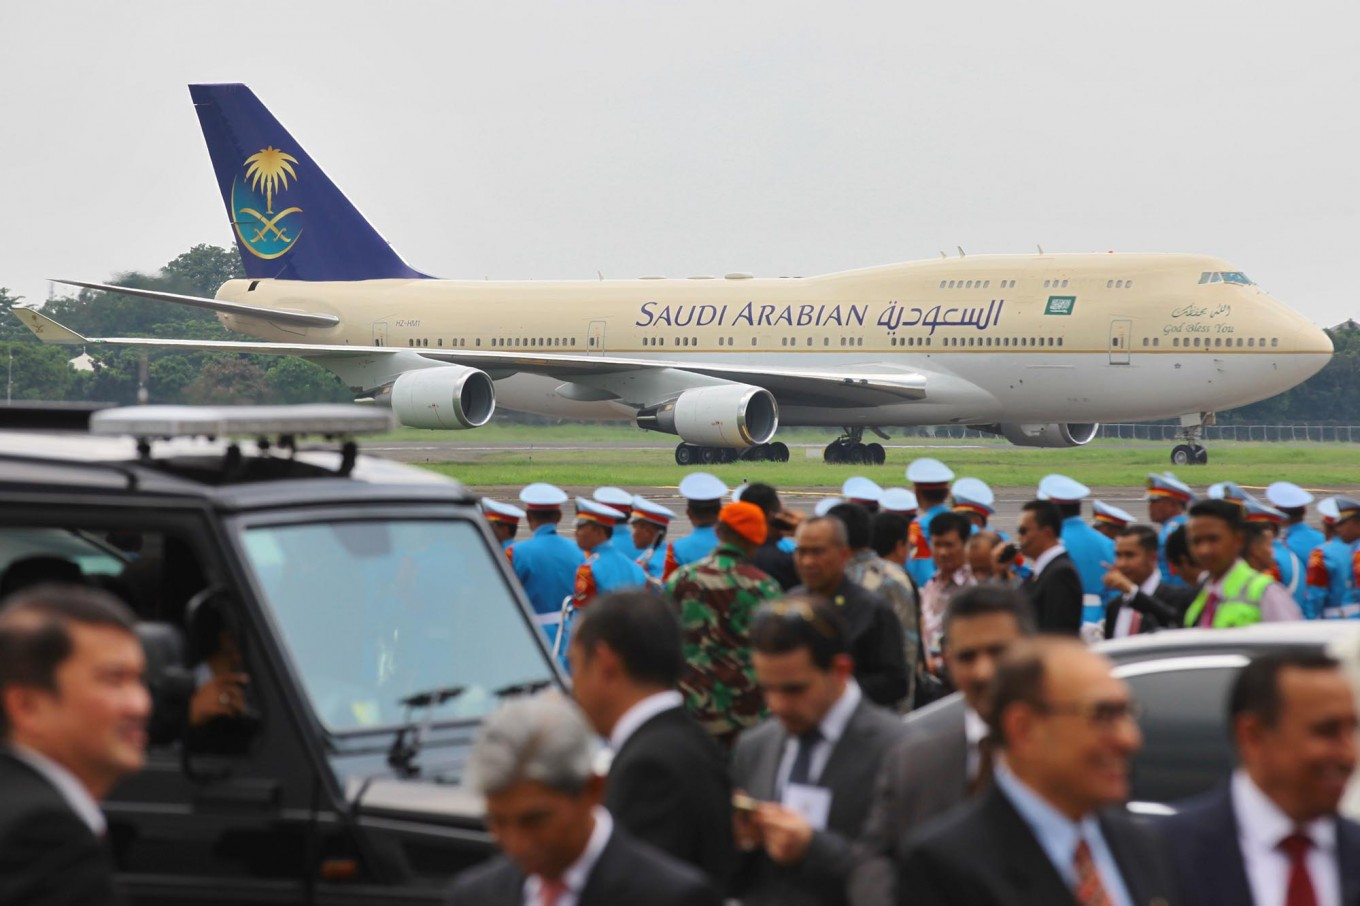 The Saudi airplane carrying King Salman bin Abdulaziz Al Saud touches down at Halim Perdanakusuma Airport on Wednesday at about 12:40 p.m. JP/Dhoni Setiawan